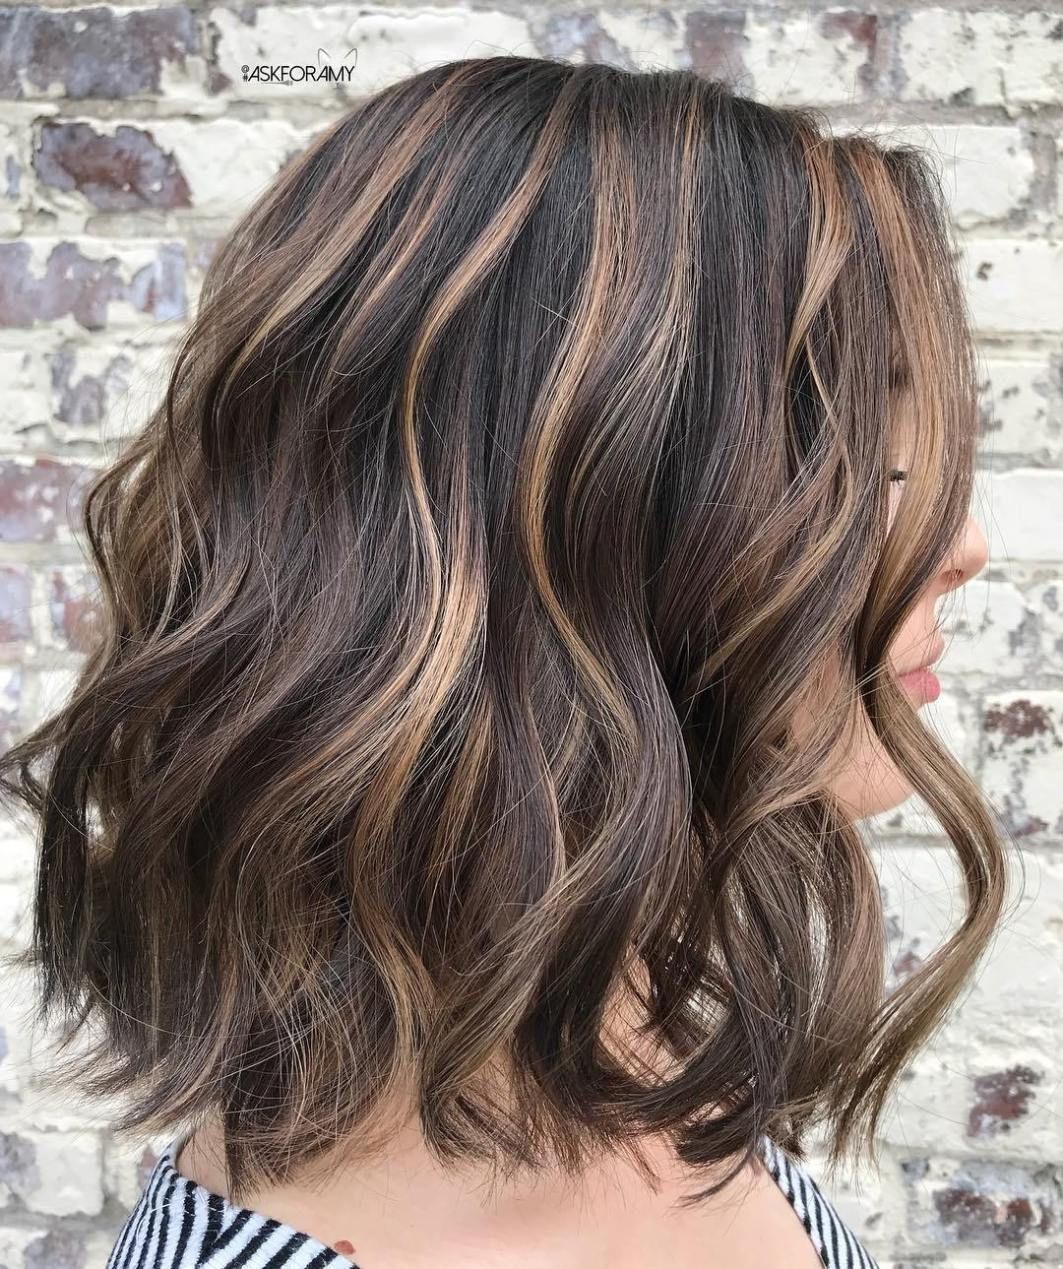 Brown Hairstyle With Beige Highlights Brown Hair With Blonde Highlights Highlights Brown Hair Balayage Highlights Brown Hair Short